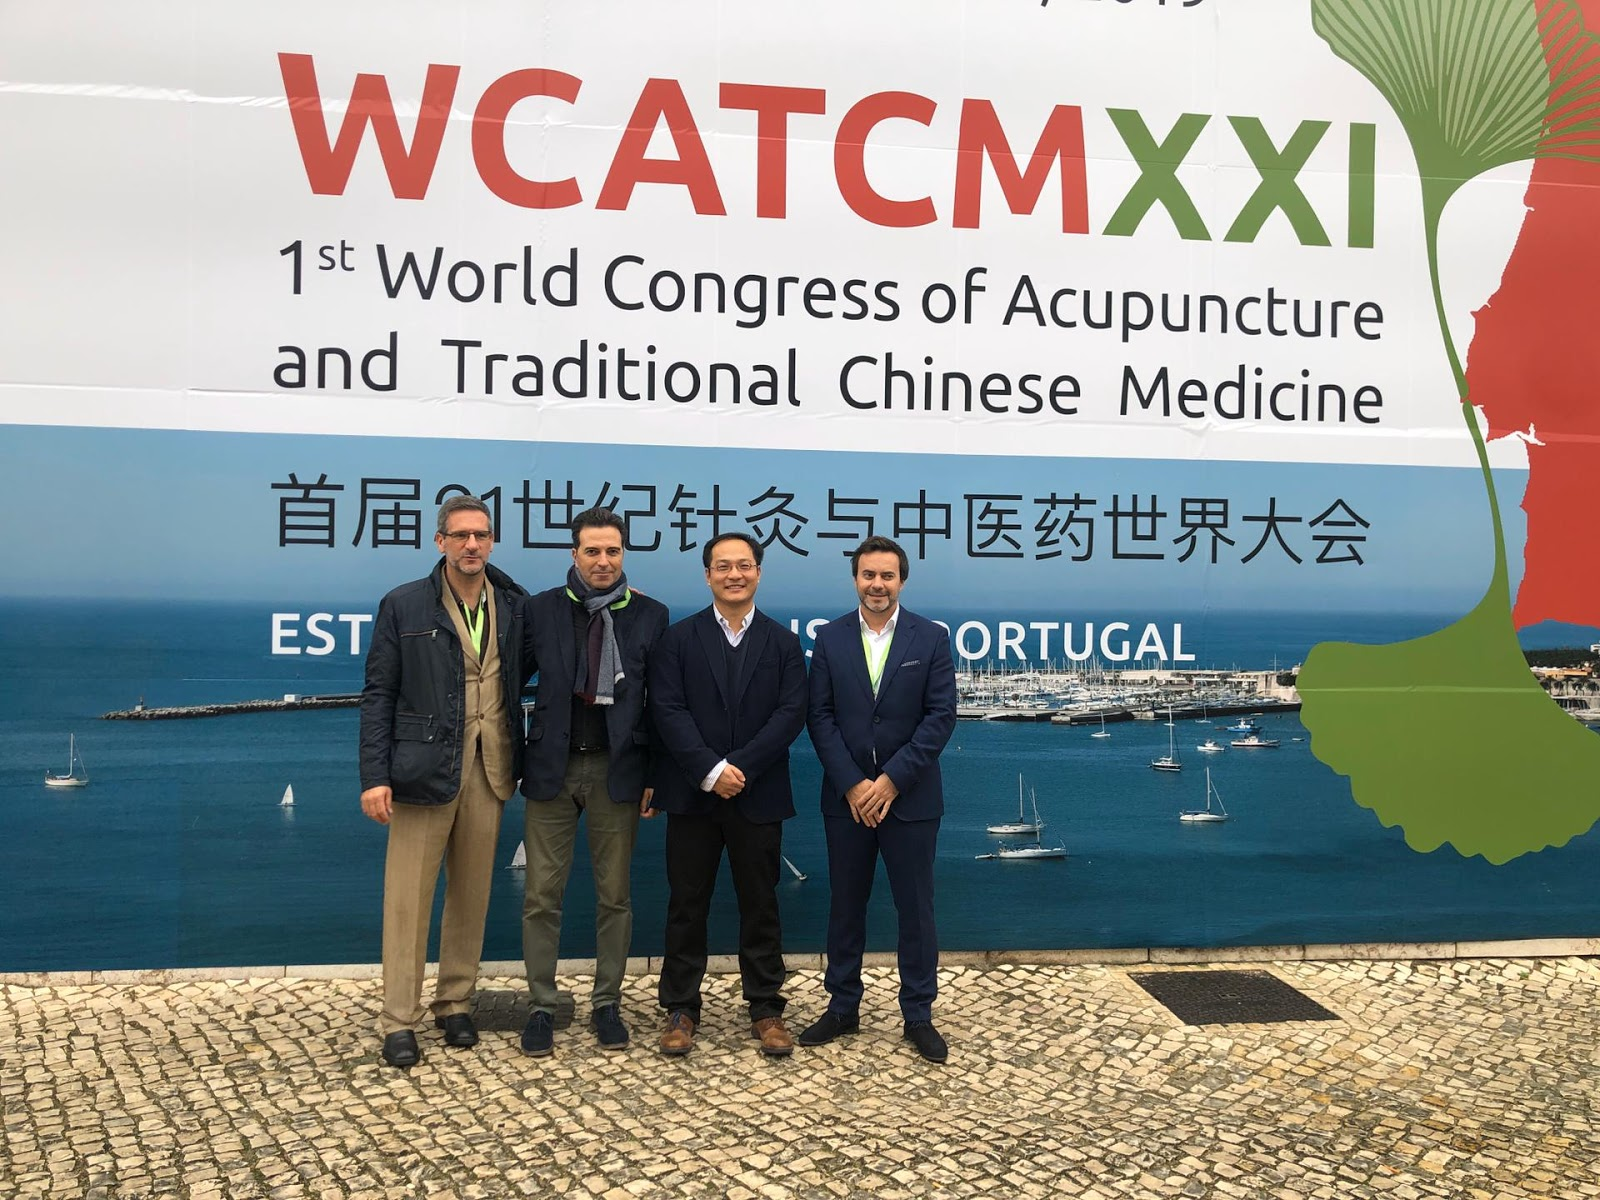 1st. World Congress of Acupunture and Traditional Chinese Medicine (Fotos)